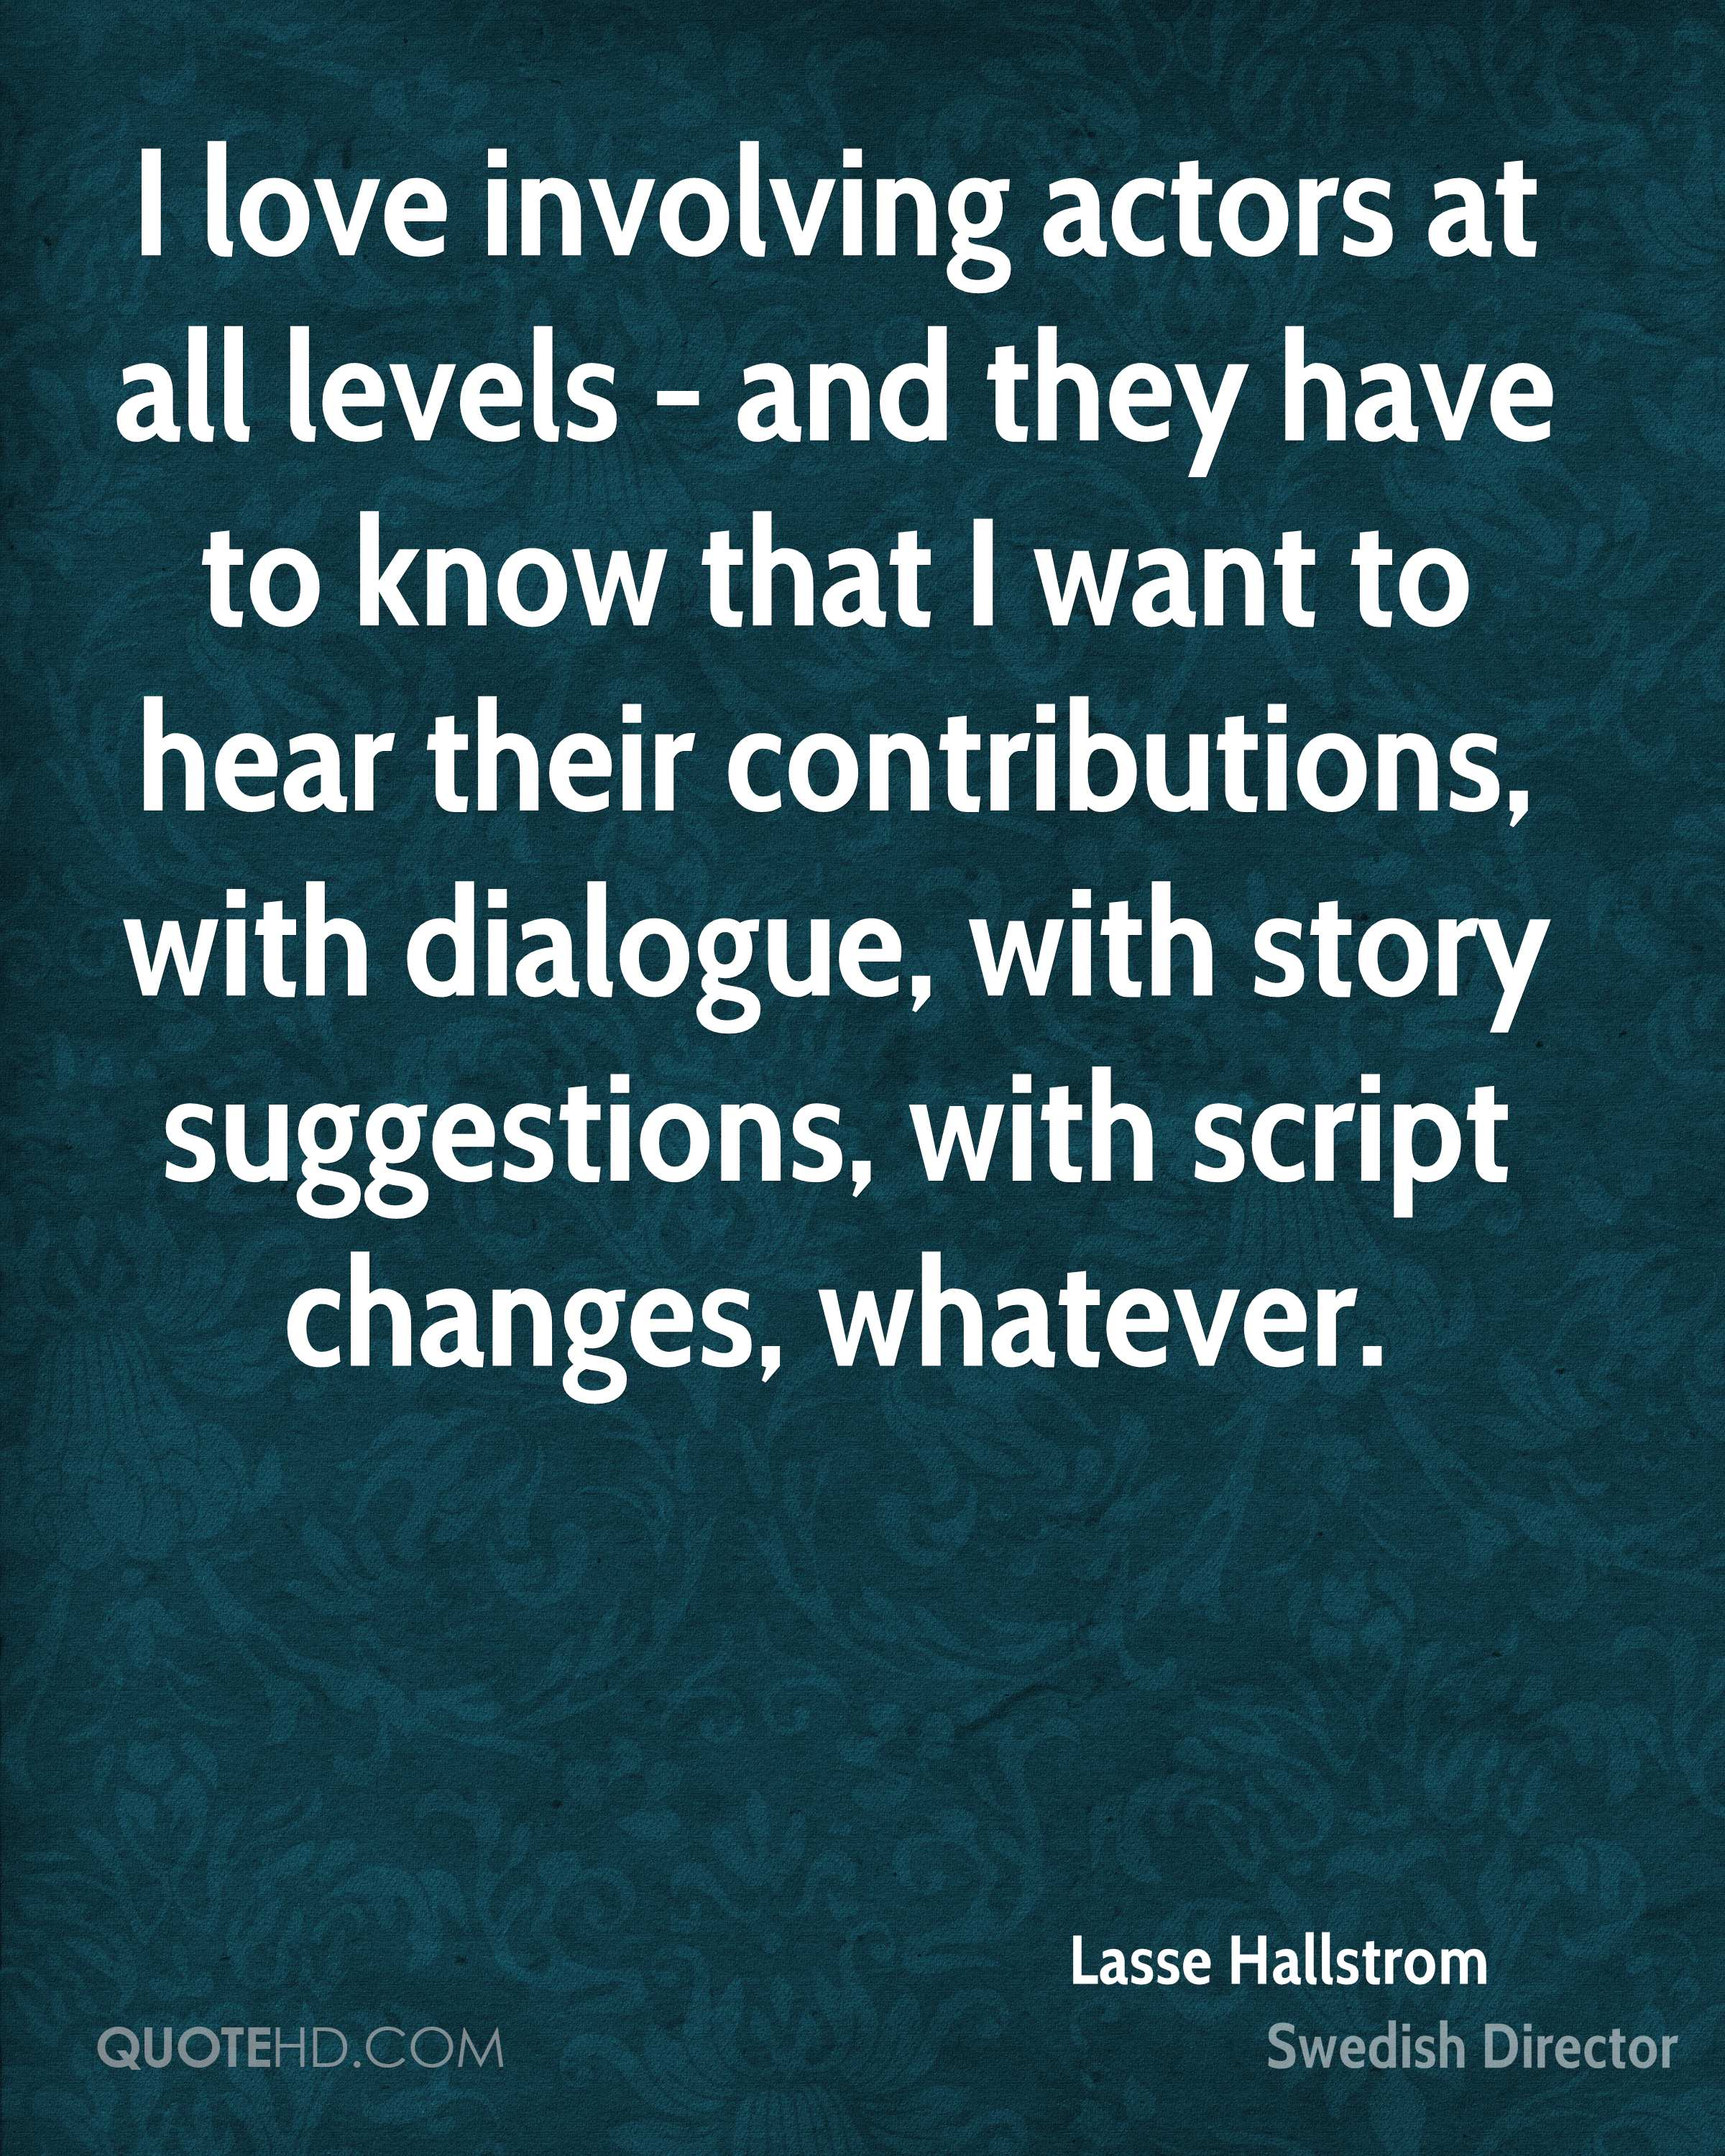 I love involving actors at all levels - and they have to know that I want to hear their contributions, with dialogue, with story suggestions, with script changes, whatever.